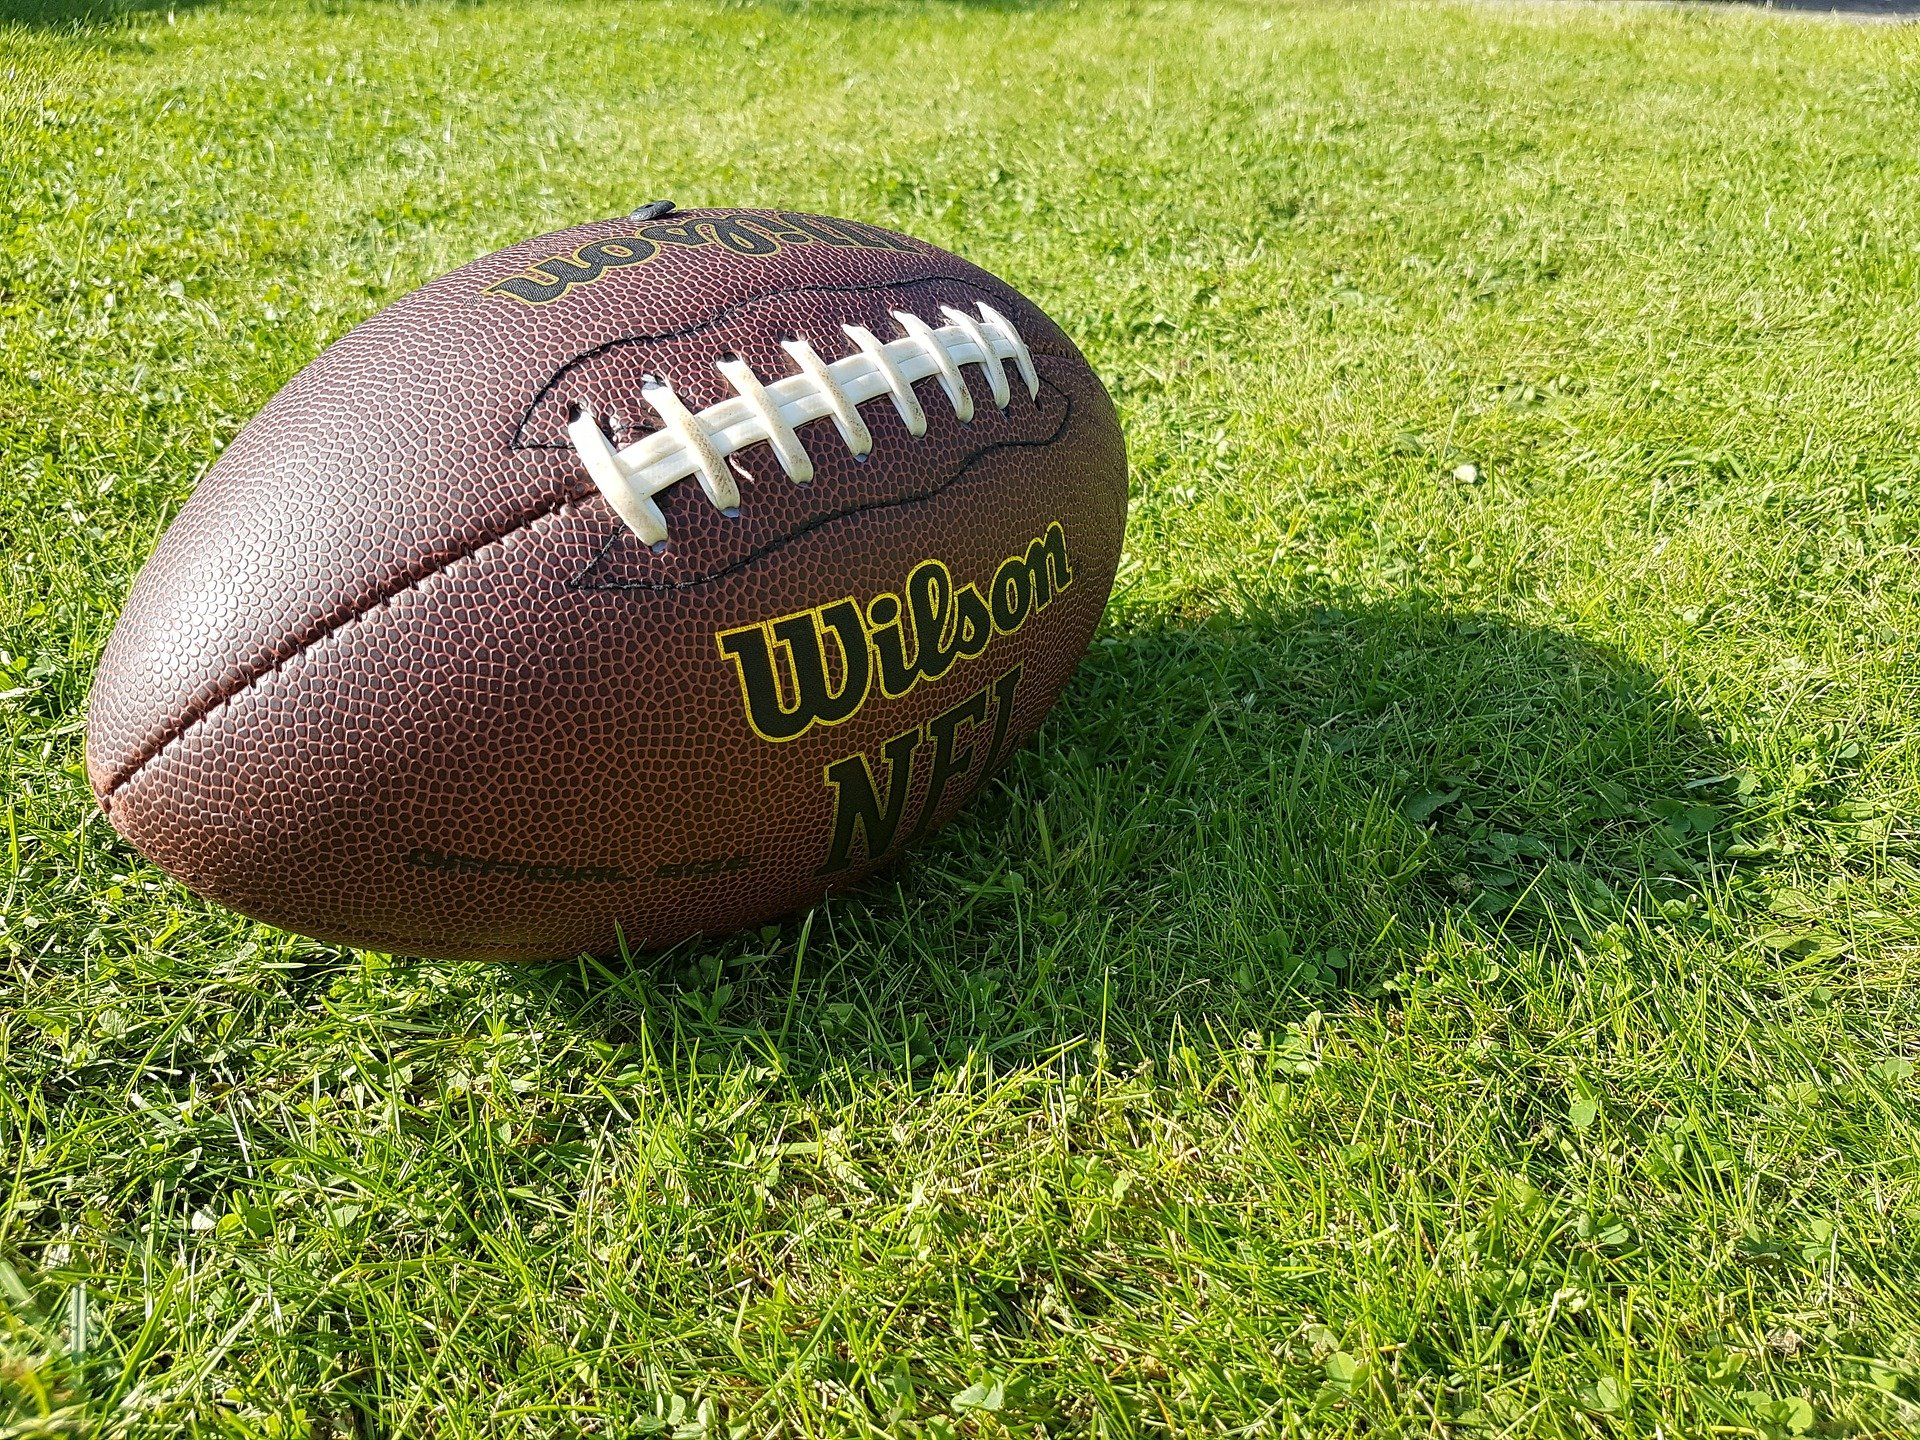 A football on a field. | Photo: Pixabay/Oliver Cardall